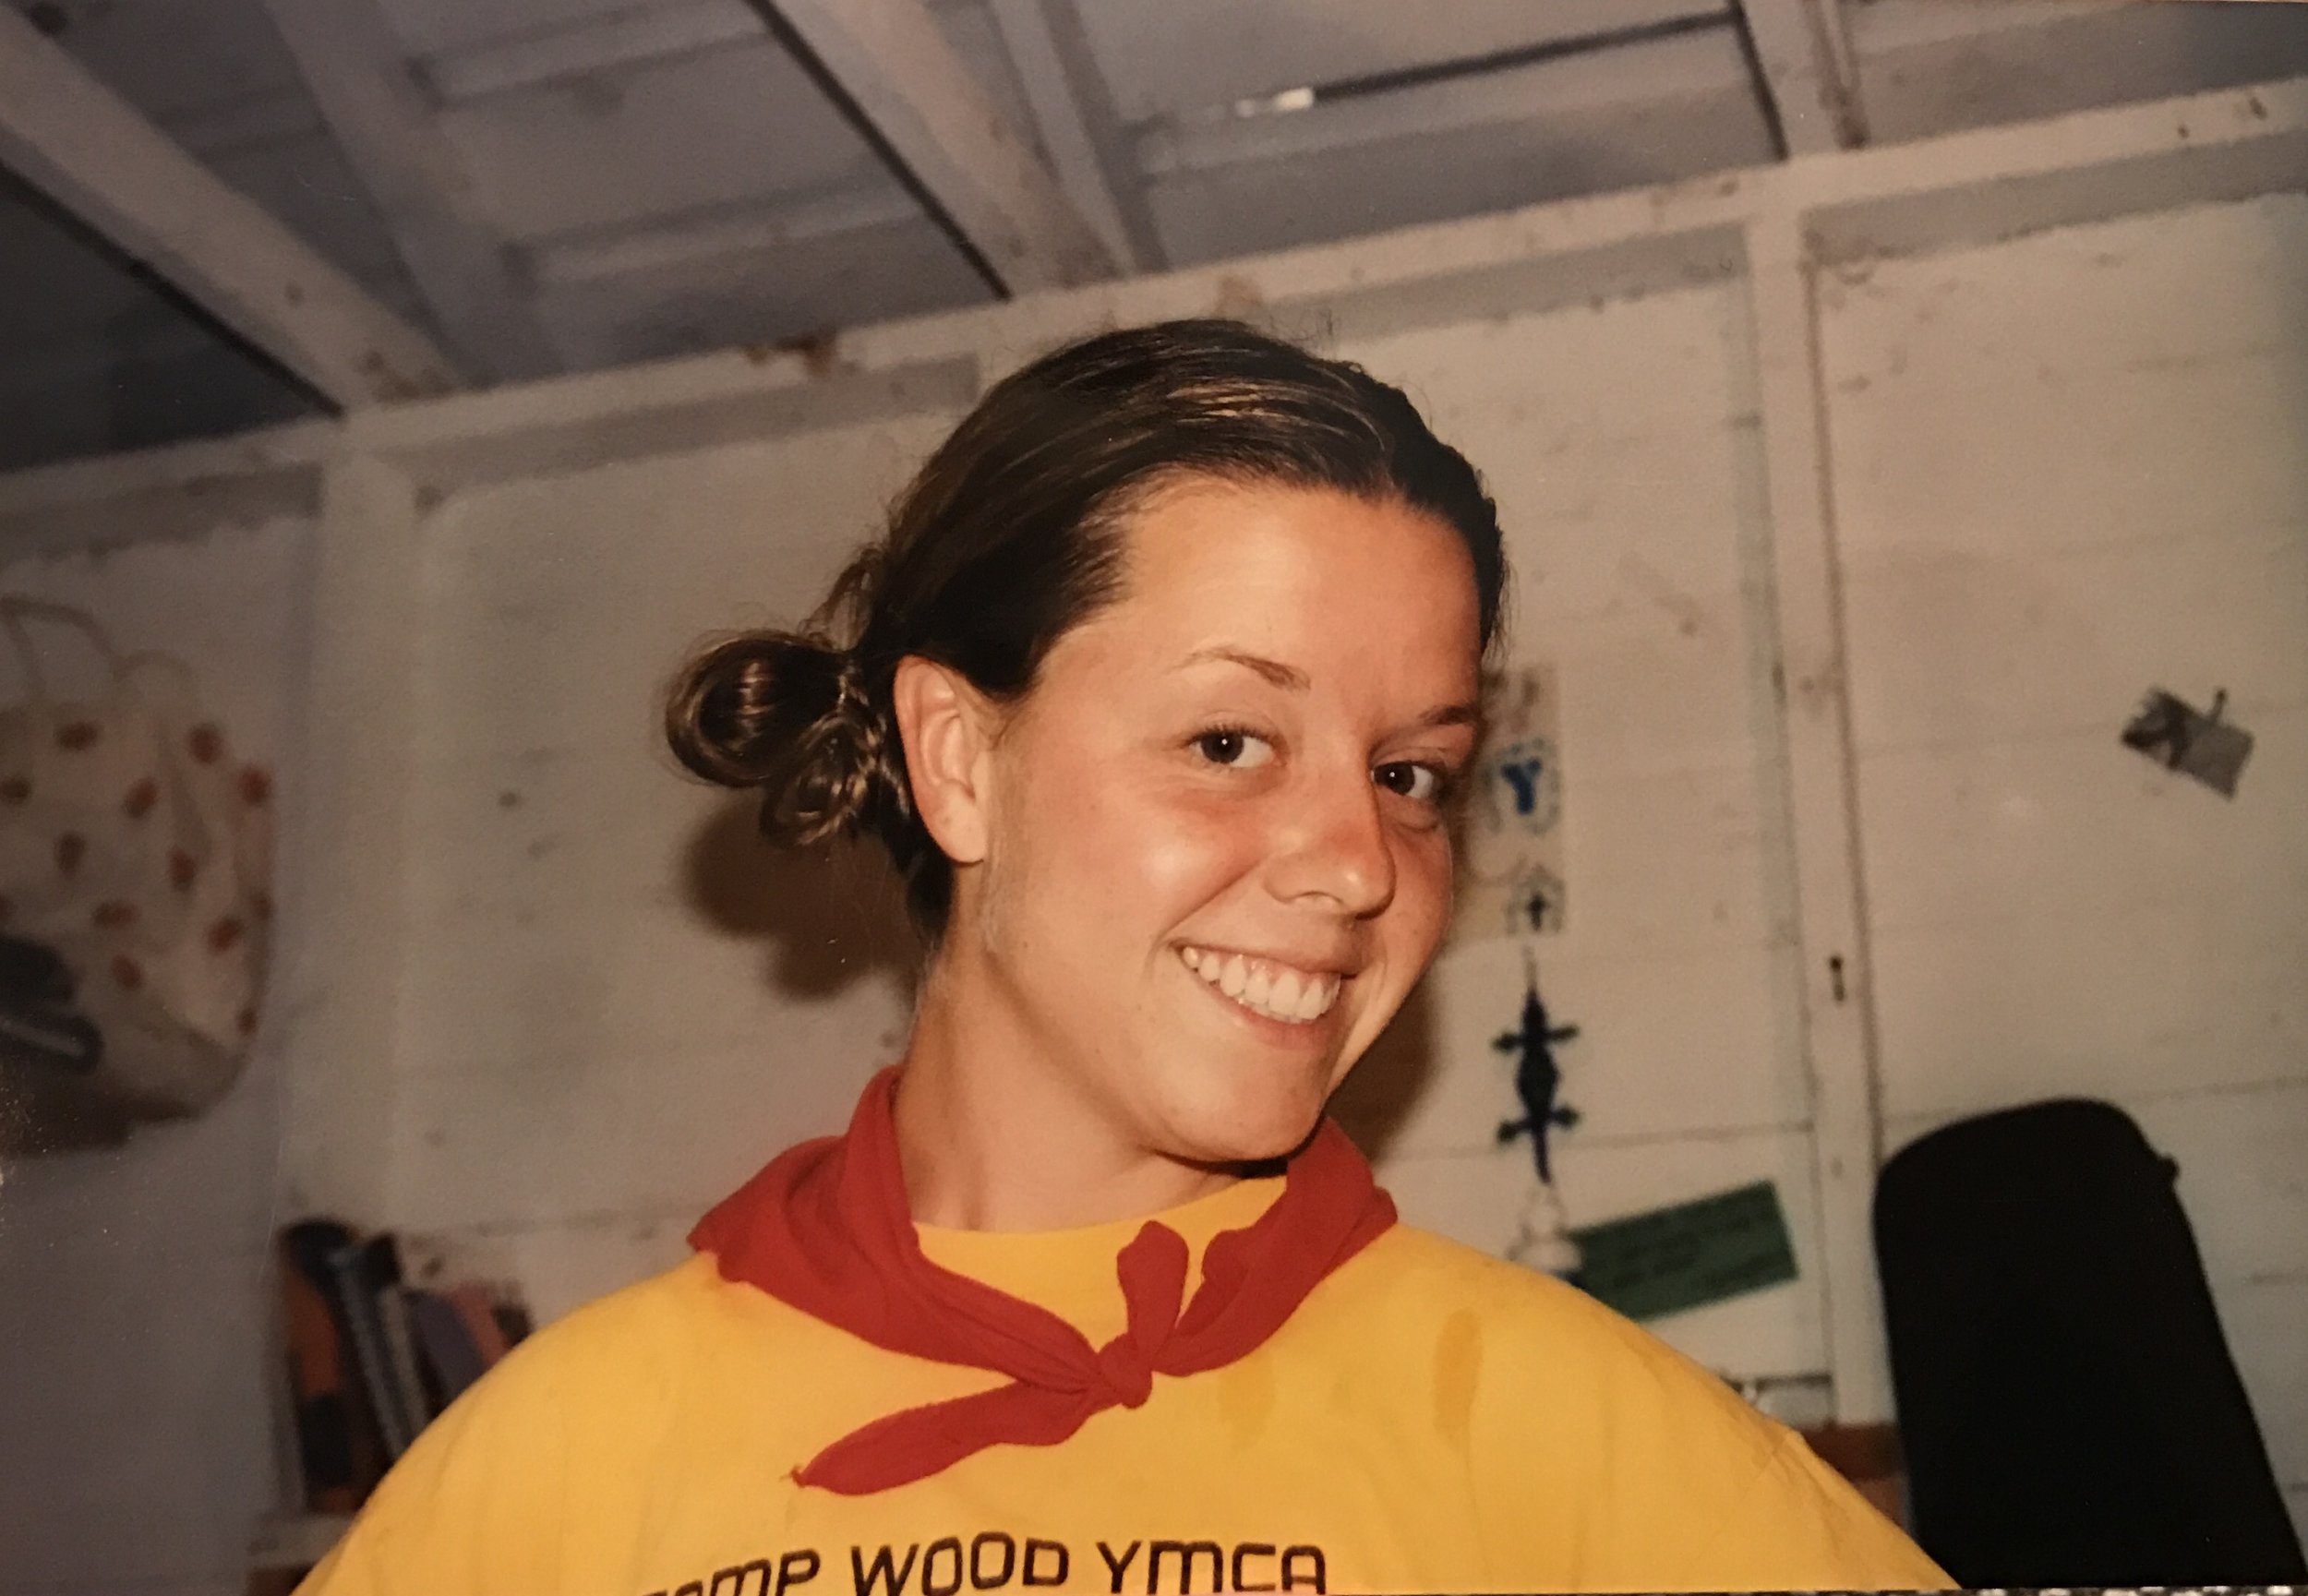 Sarah Baade spent 15 summers at Camp Wood YMCA--as a camper, volunteer and later, as a staff member.